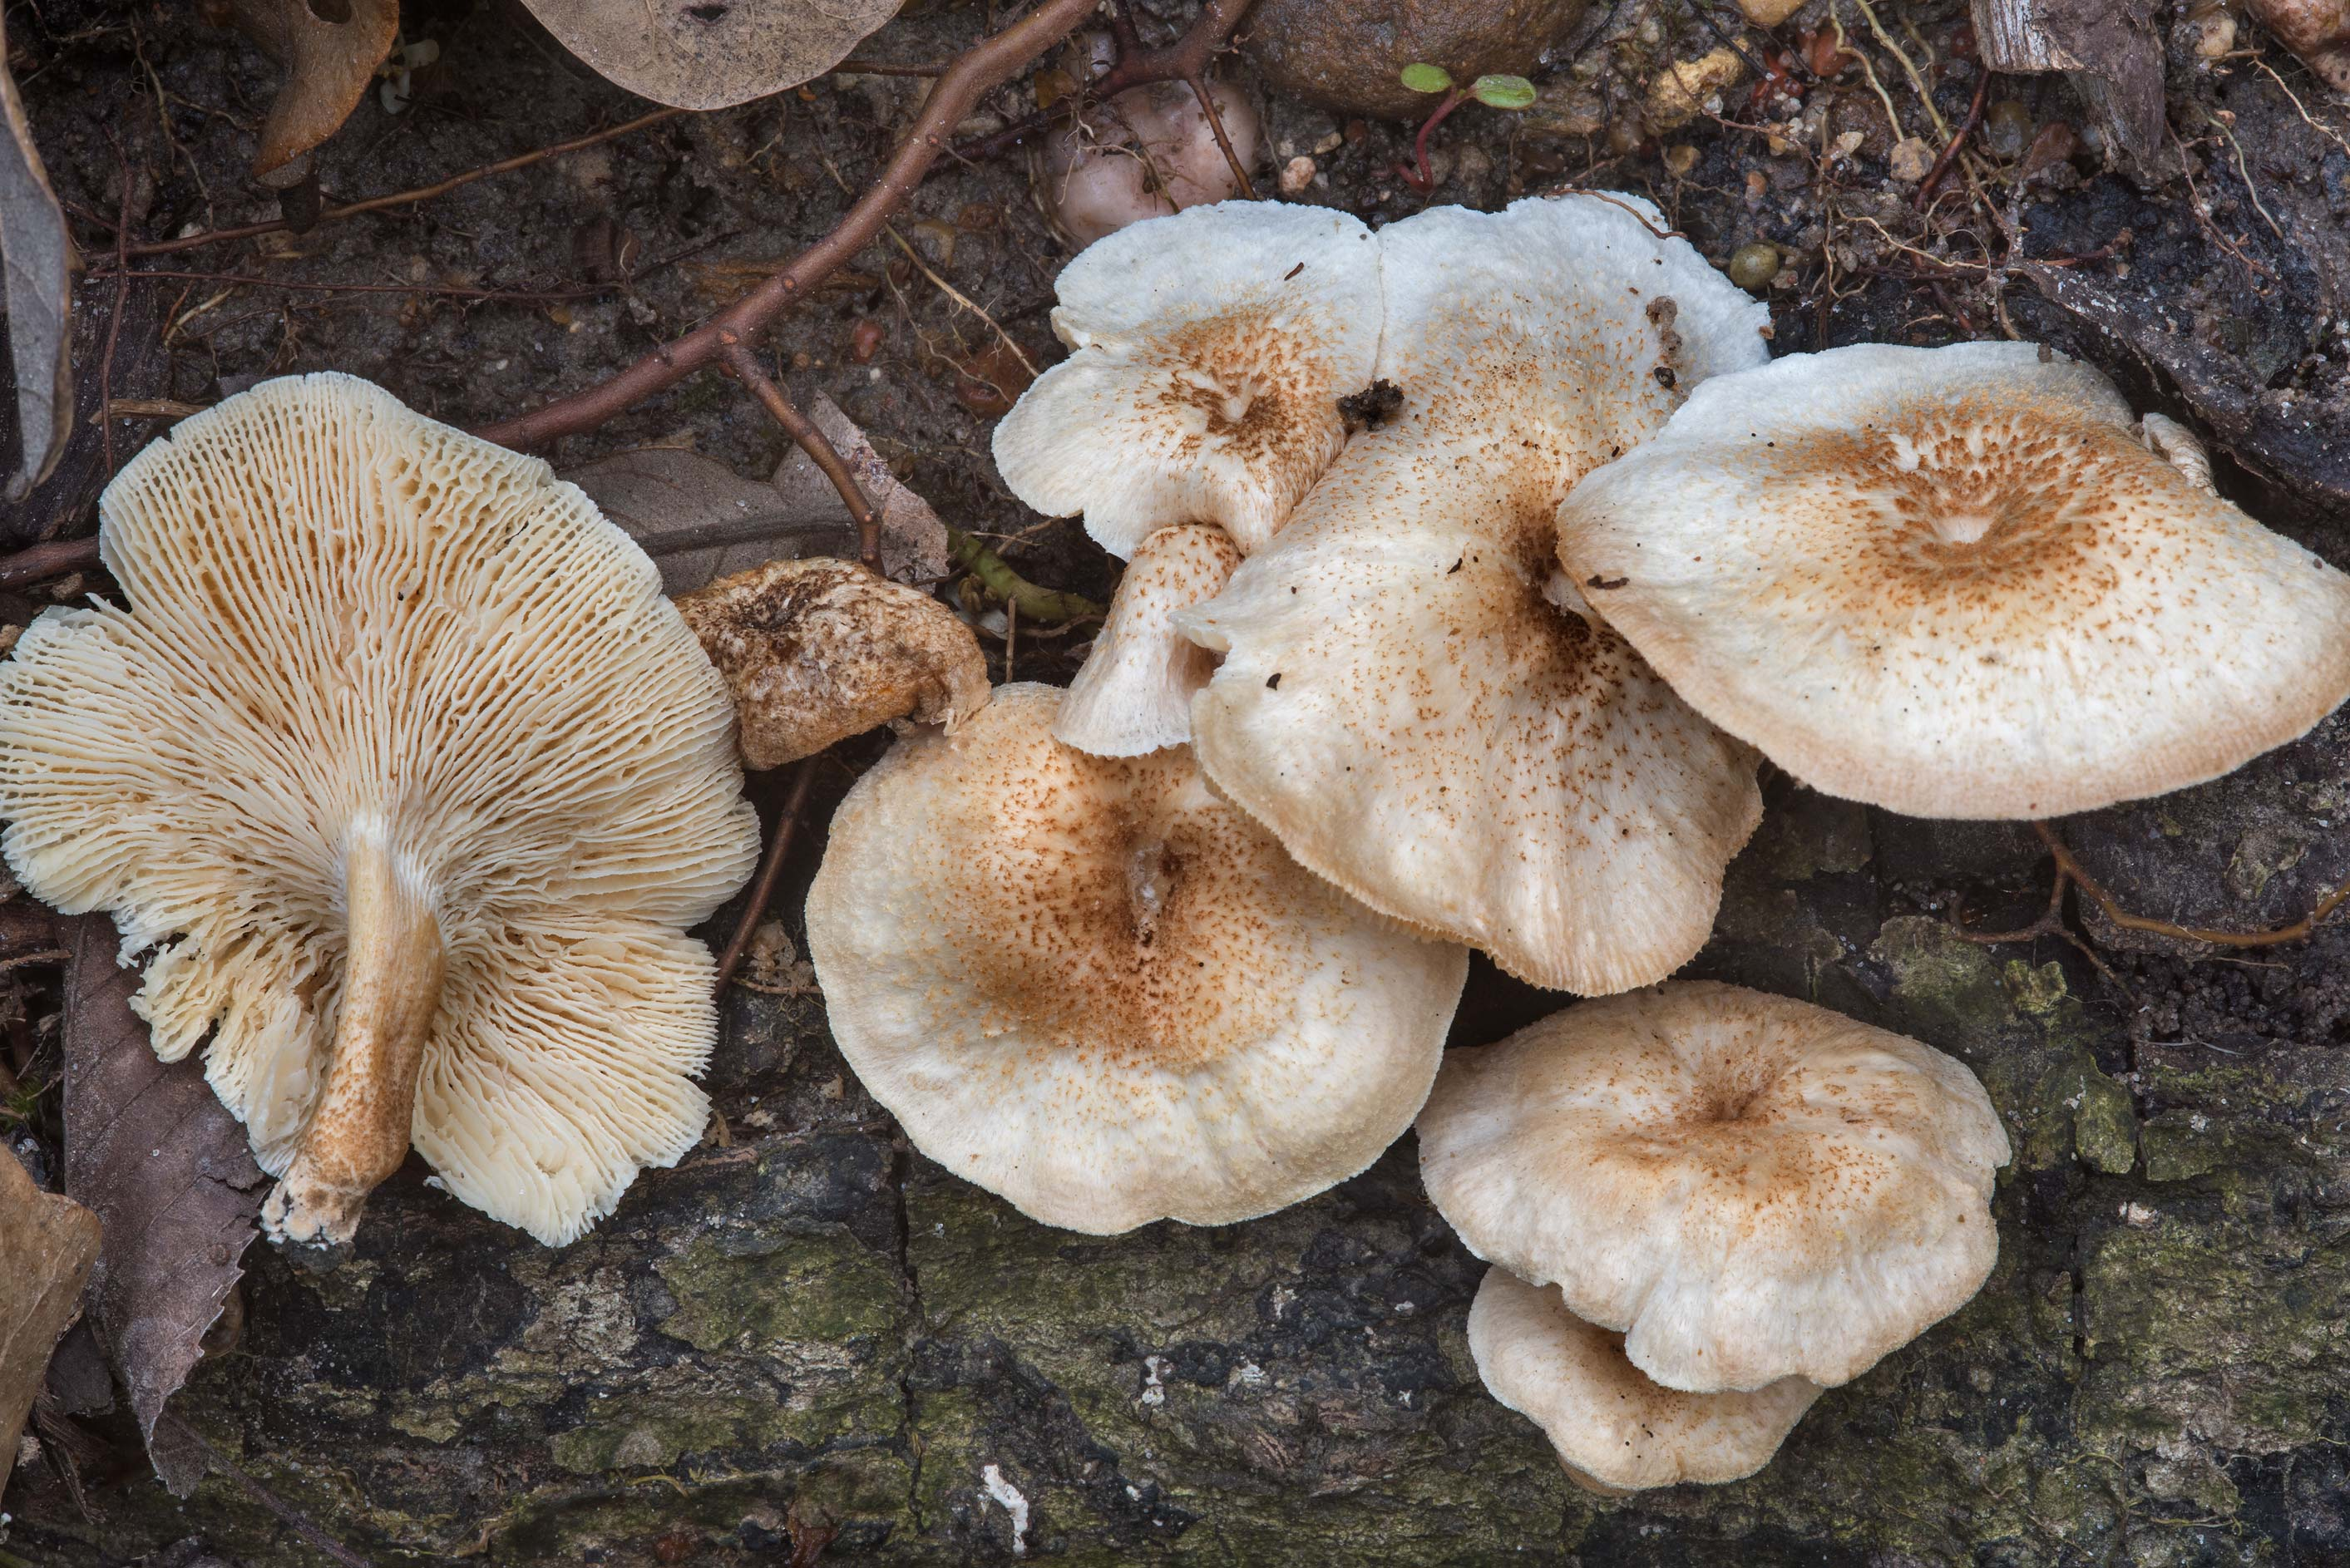 Tiger sawgill mushrooms (Lentinus tigrinus) on a...Nature Trail. College Station, Texas